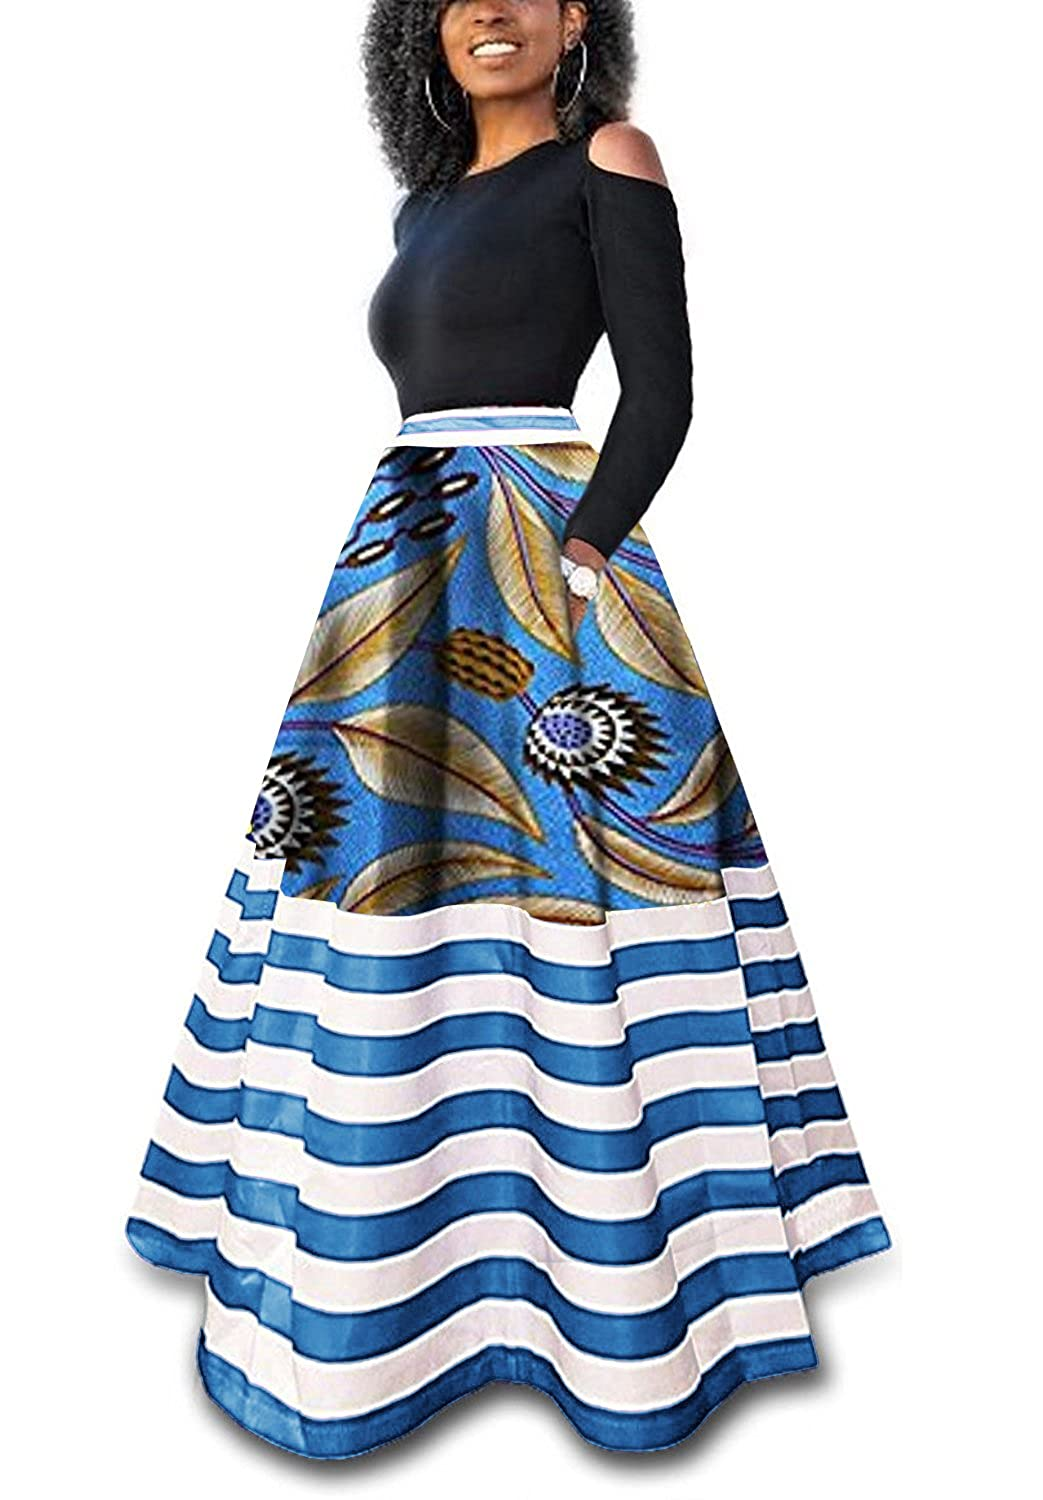 1e1d788954 Material-95%Polyester+5%Polyester.The maxi long skirt with high quality  breathable material,soft fabric and stretch.This dashiki print skirt is  machine ...